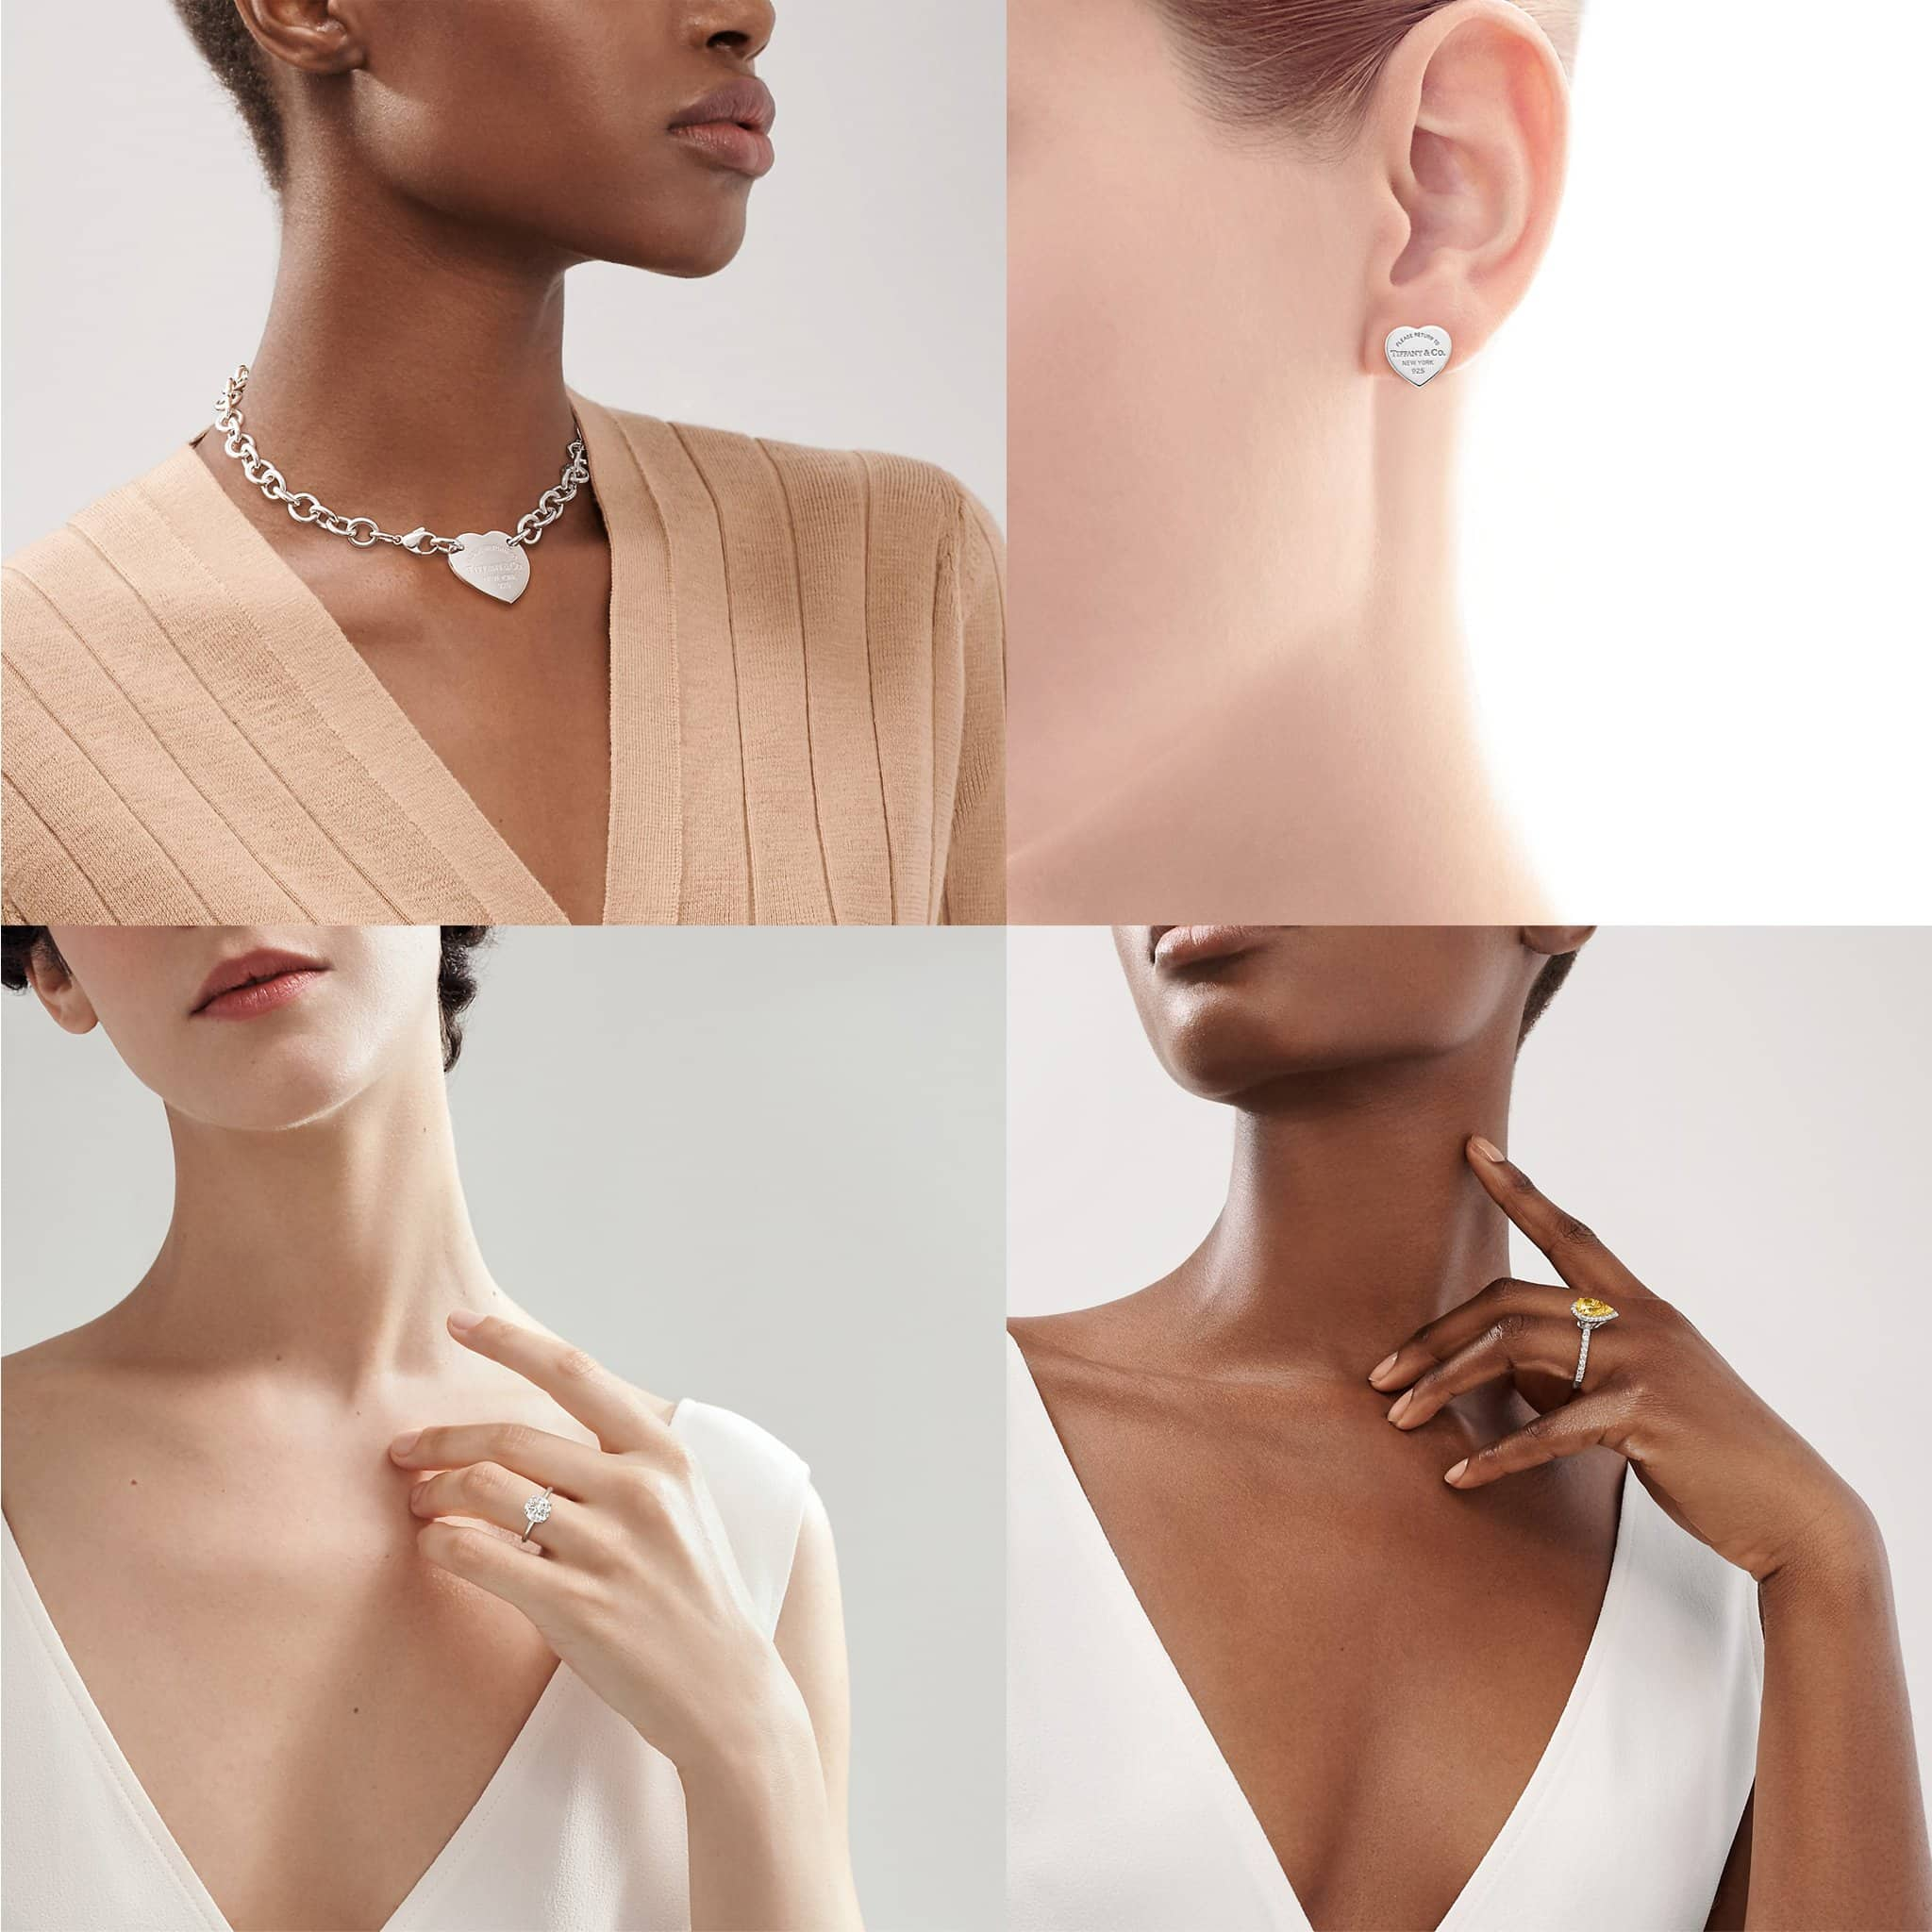 Return to Tiffany Heart Tag necklace, $675; Return to Tiffany Heart Tag Stud earrings, $200; Tiffany True engagement ring; Tiffany Soleste Pear-shaped Halo engagement ring, $32,400